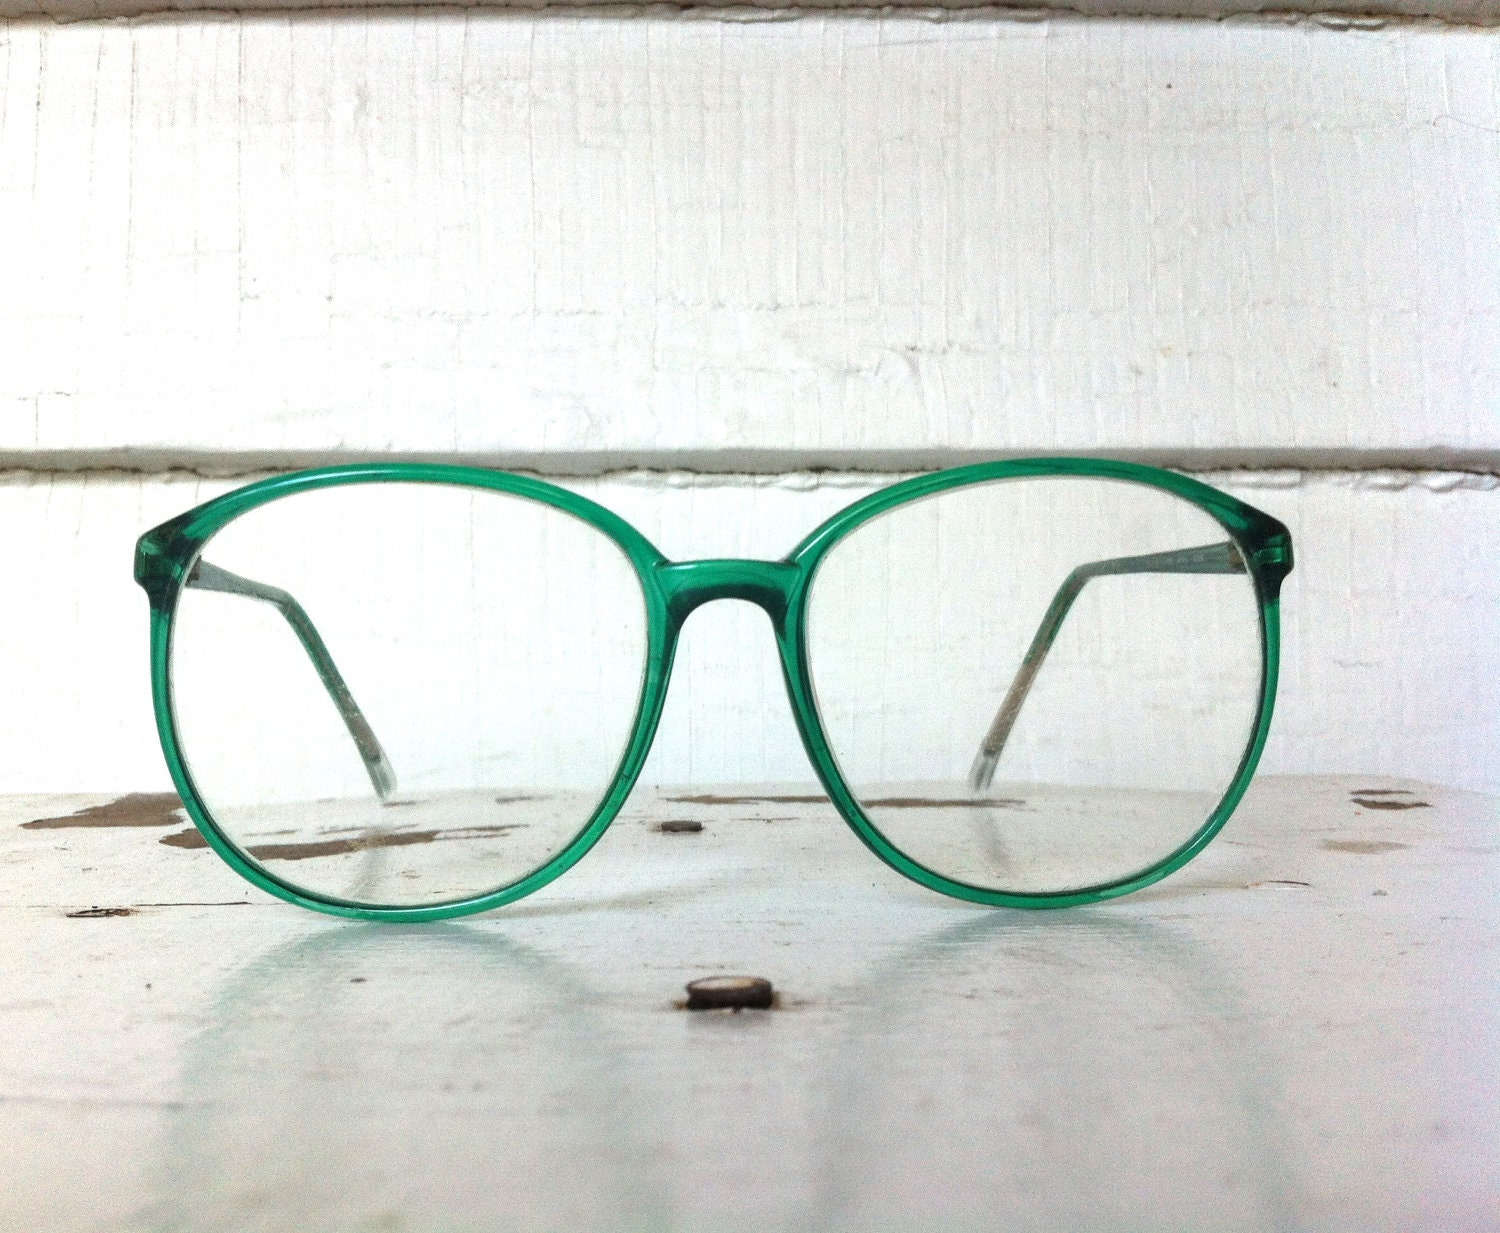 Glasses Frames Green : vintage eyeglasses // vintage oversized green plastic by ...